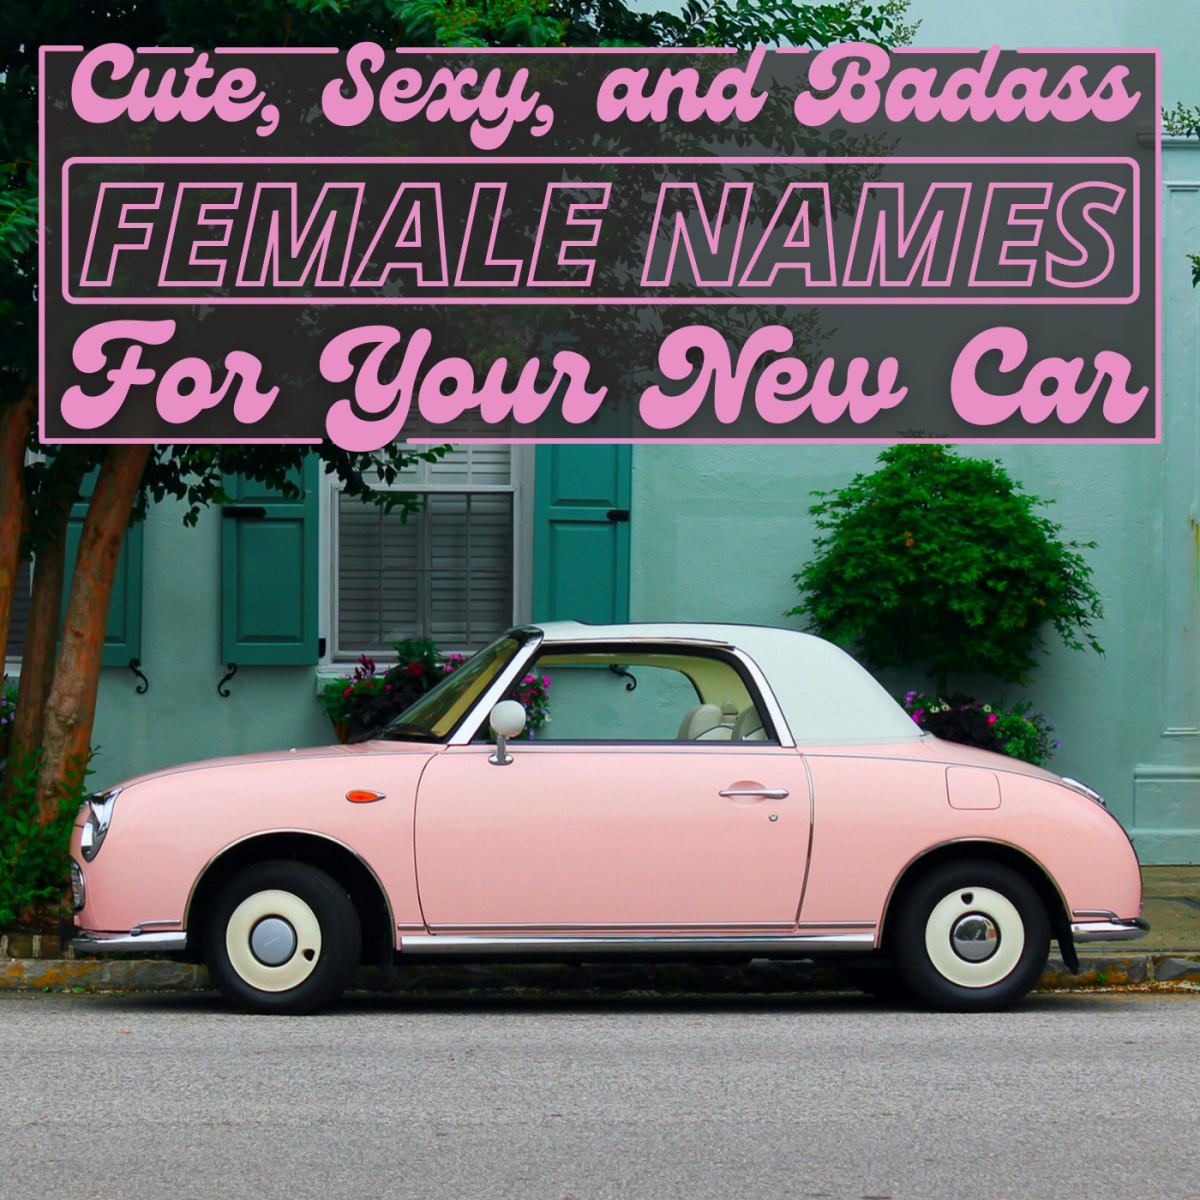 Is your car really yours if you haven't given it a name?